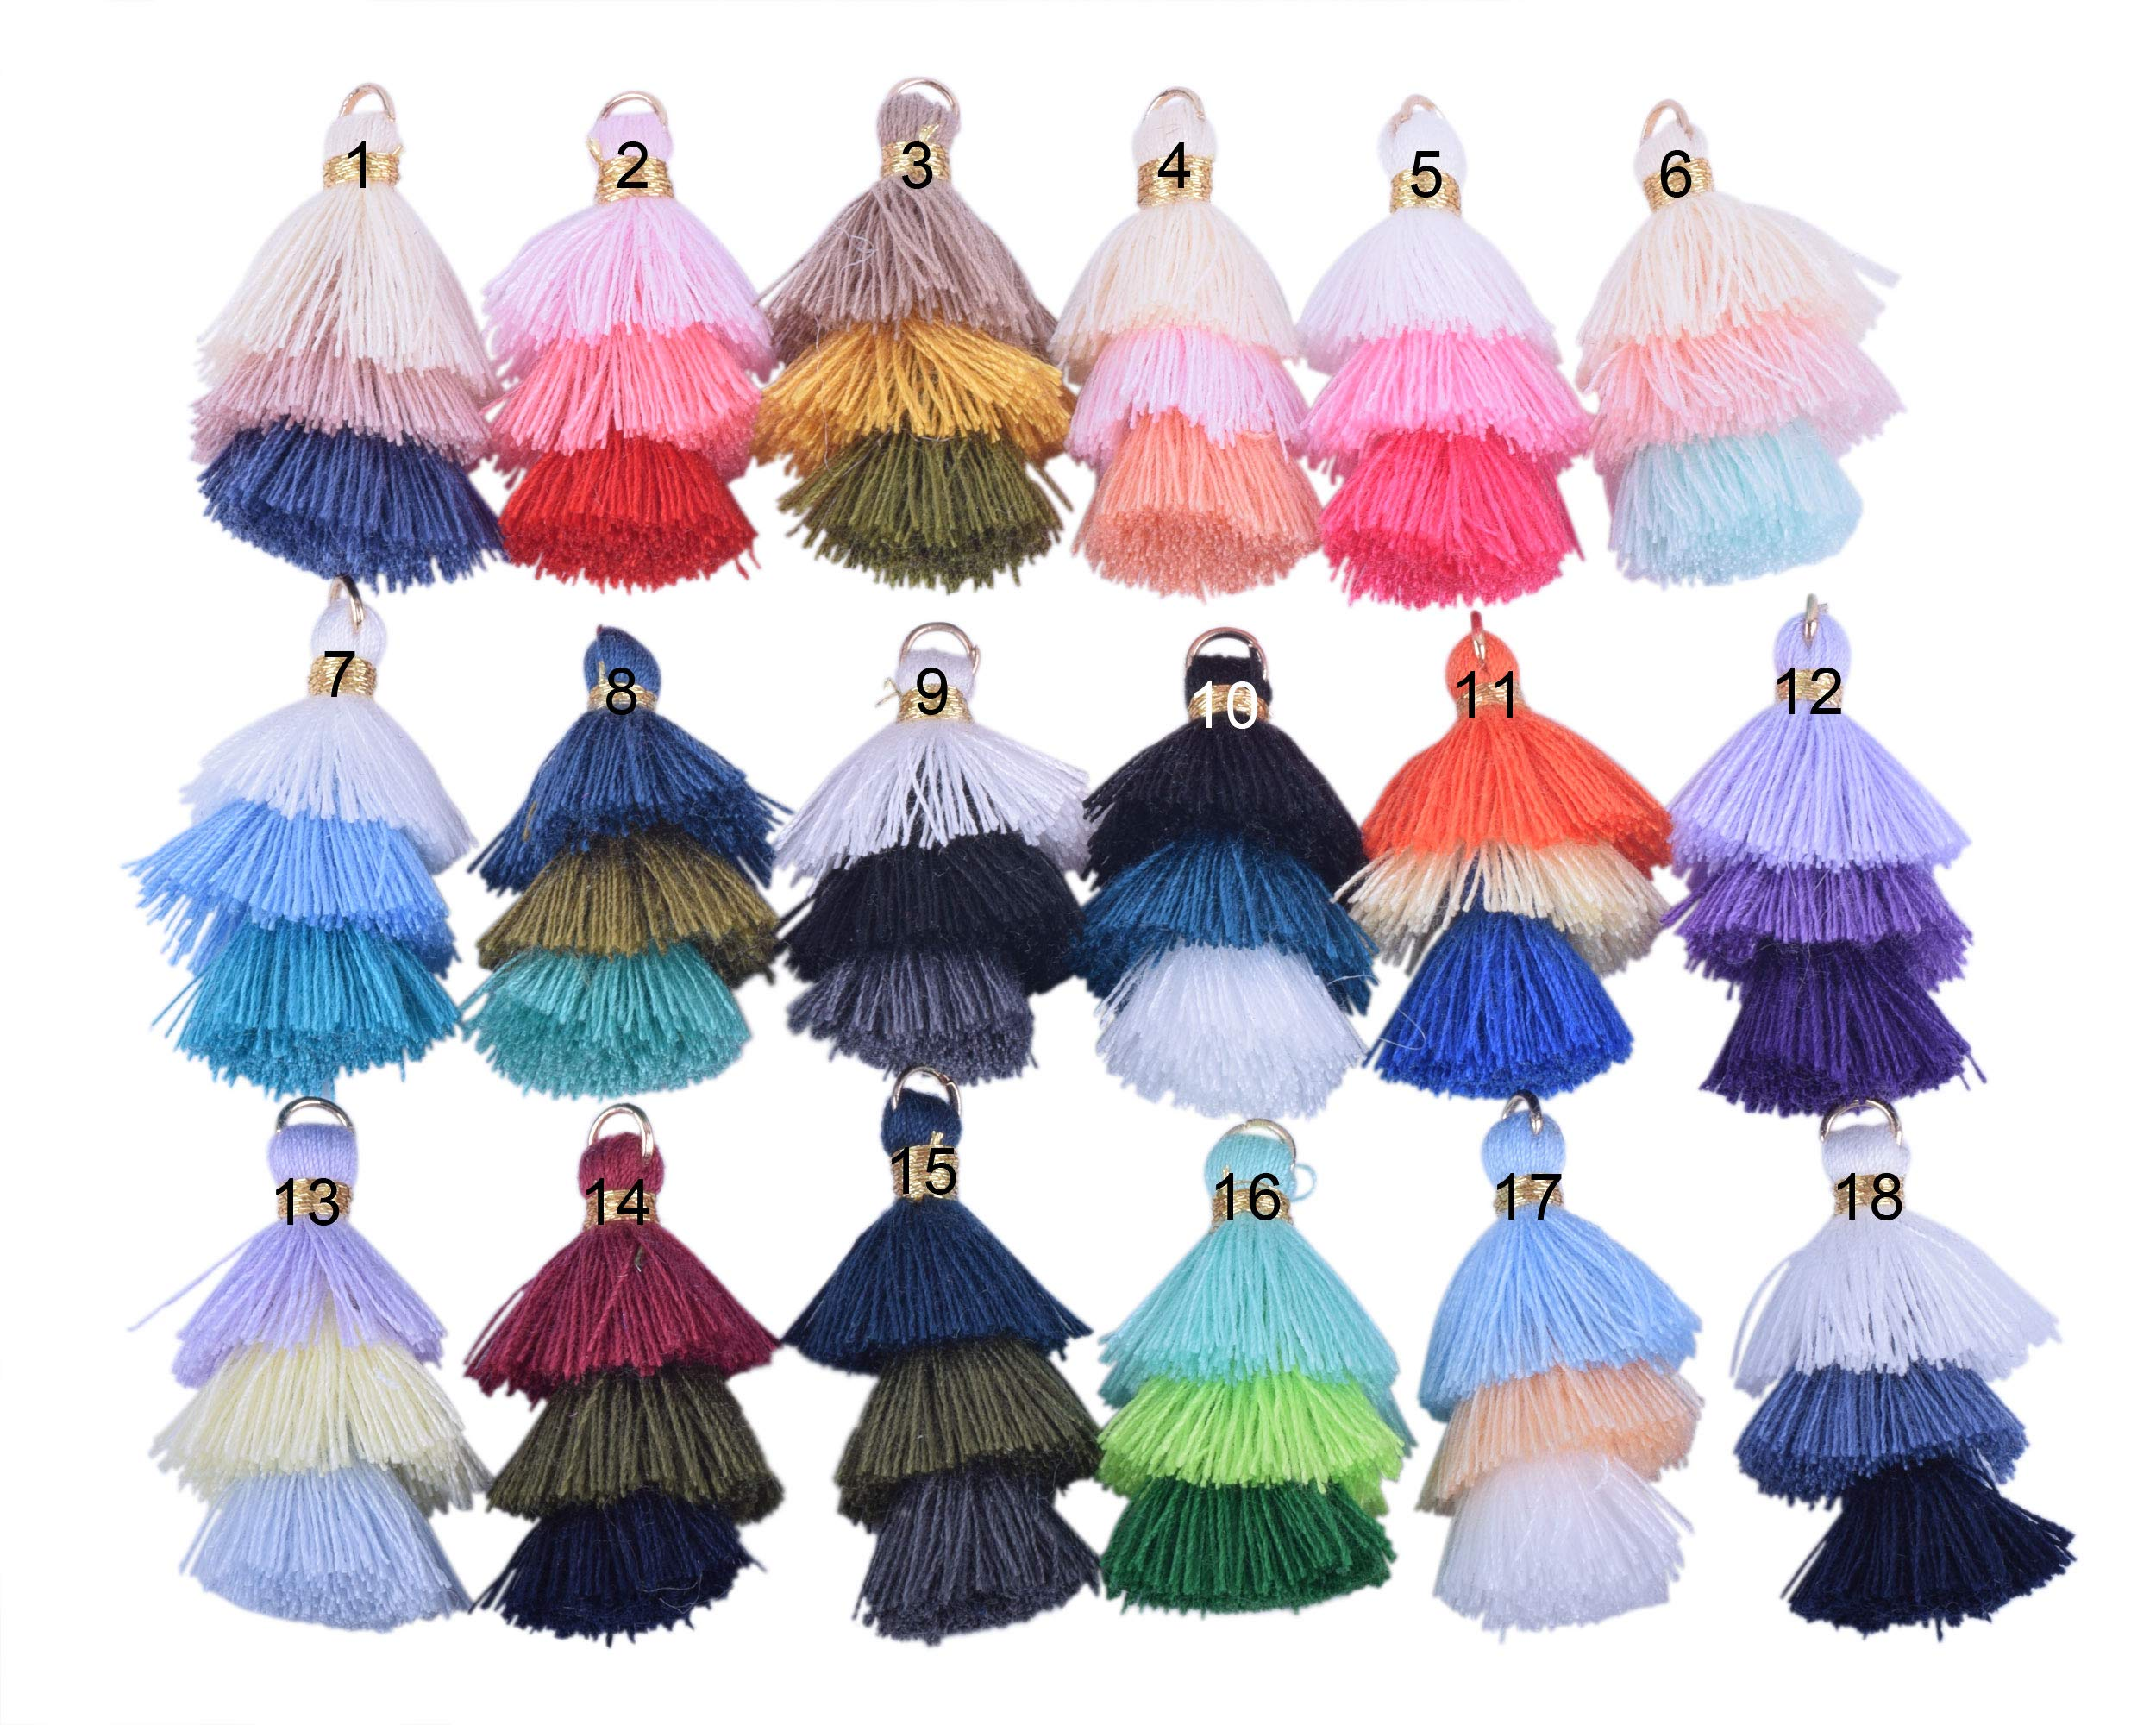 KONMAY 50pcs Bulk 1.4''(3.5cm) Tiny Tri-Layered Tassels with Gold Jump Ring for Jewelry Making, Clothing by Konmay